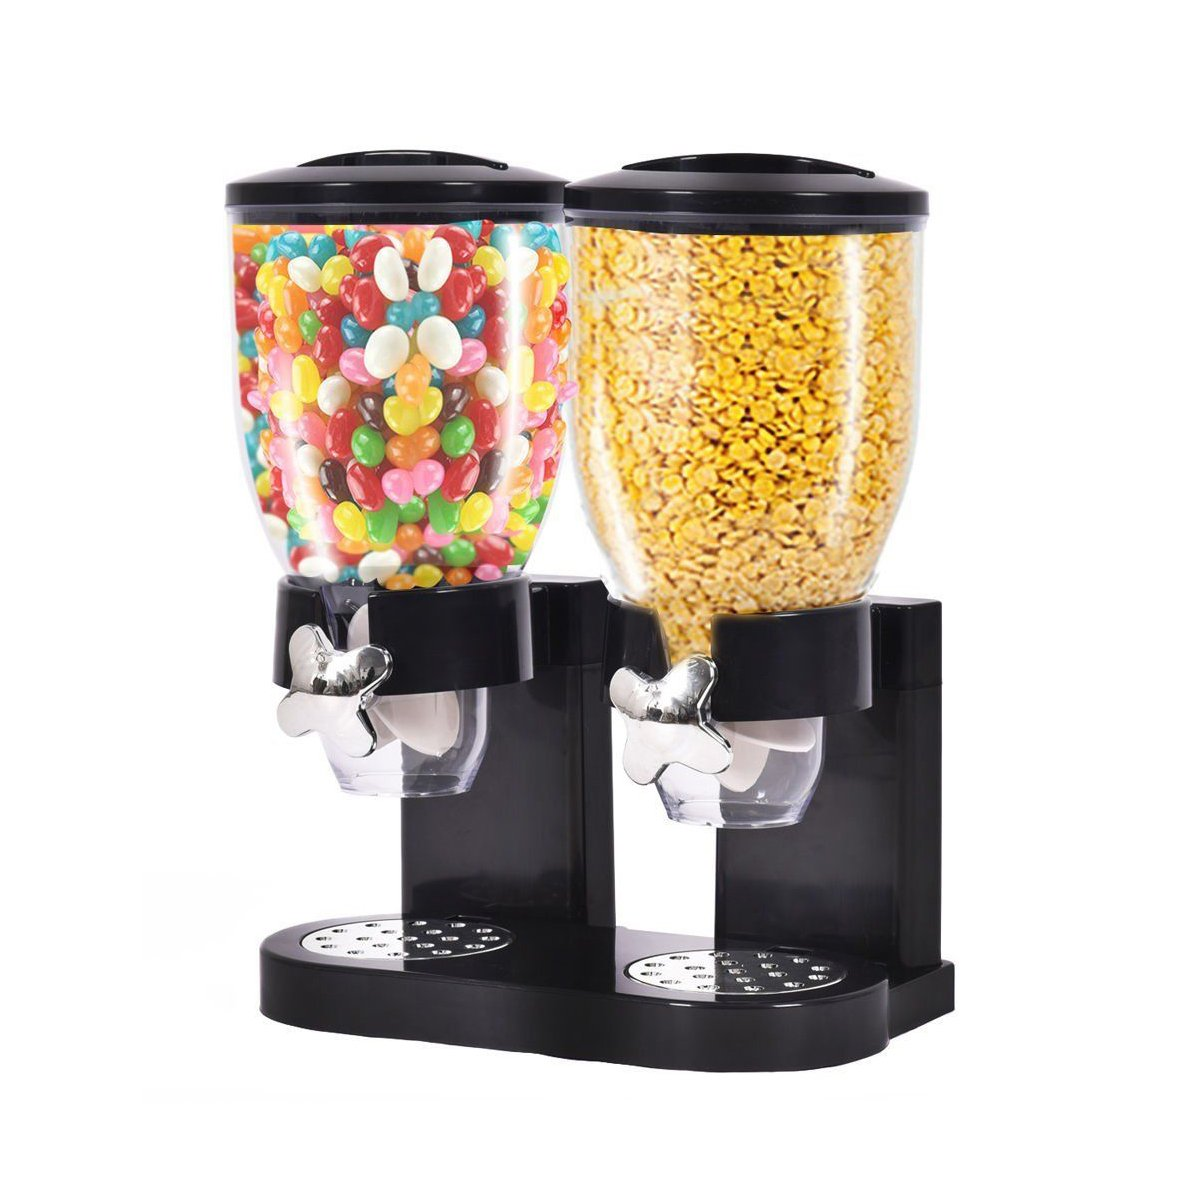 Belovedkai Dry Food Dispenser, Cereal Dispenser, Dual Control Twin Container for Kitchen Storage